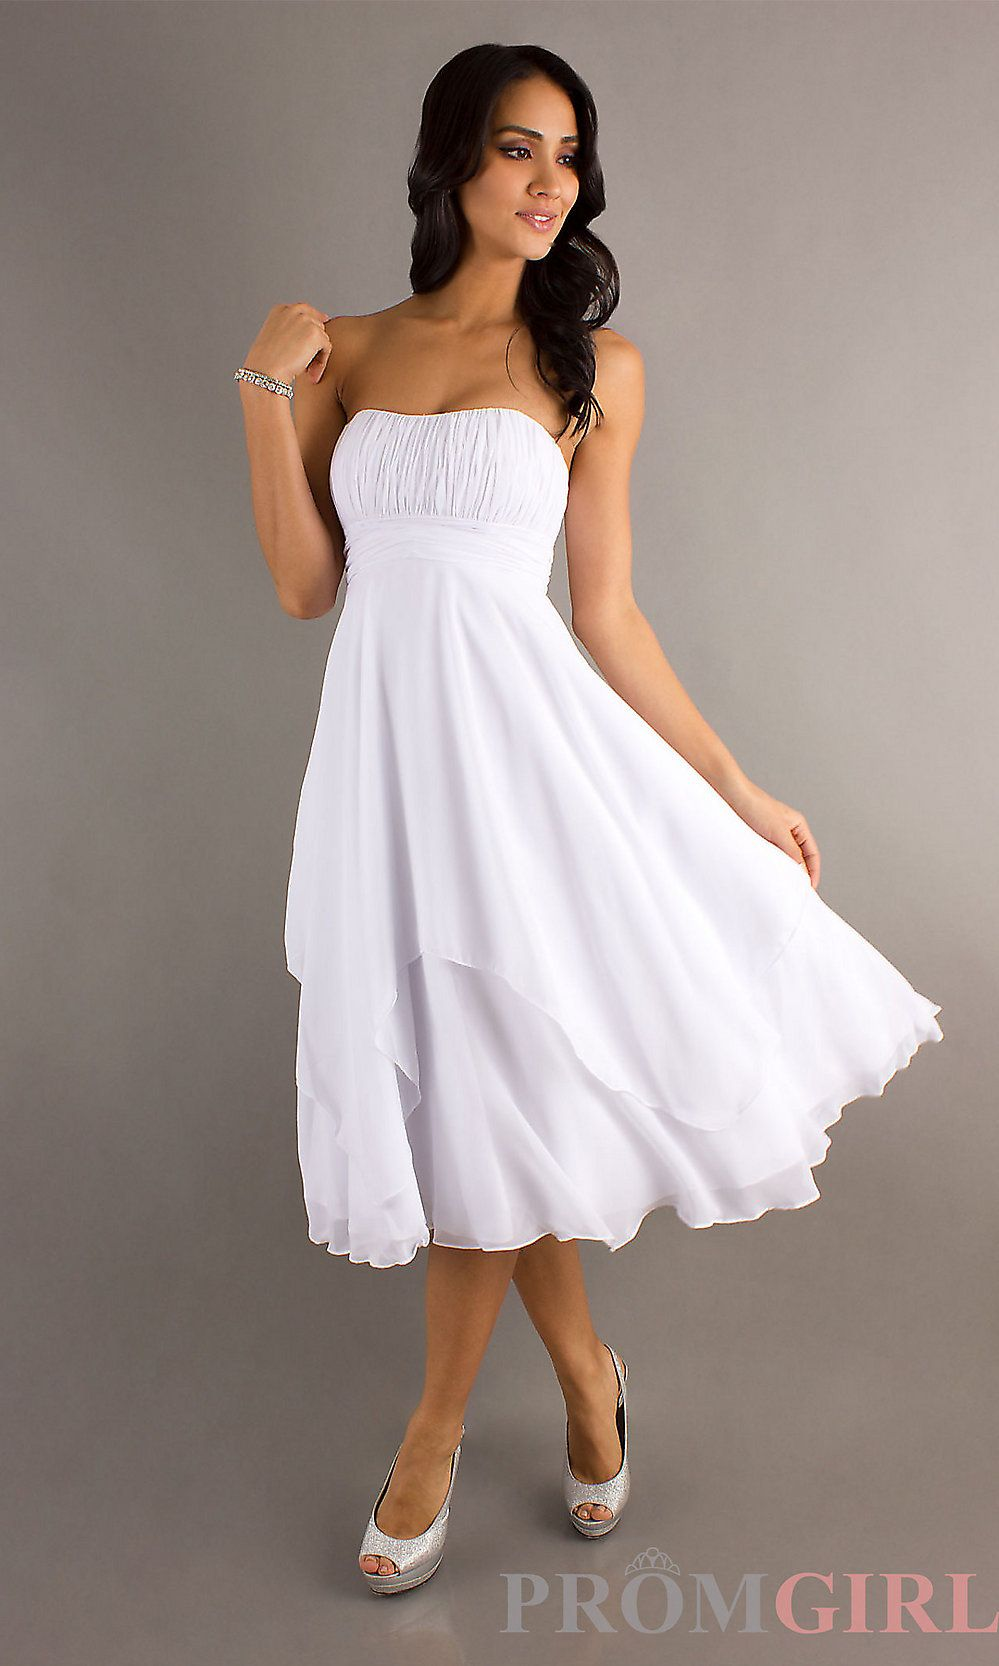 white dresses | Modest White Dress | Um soo not ready for a board ...